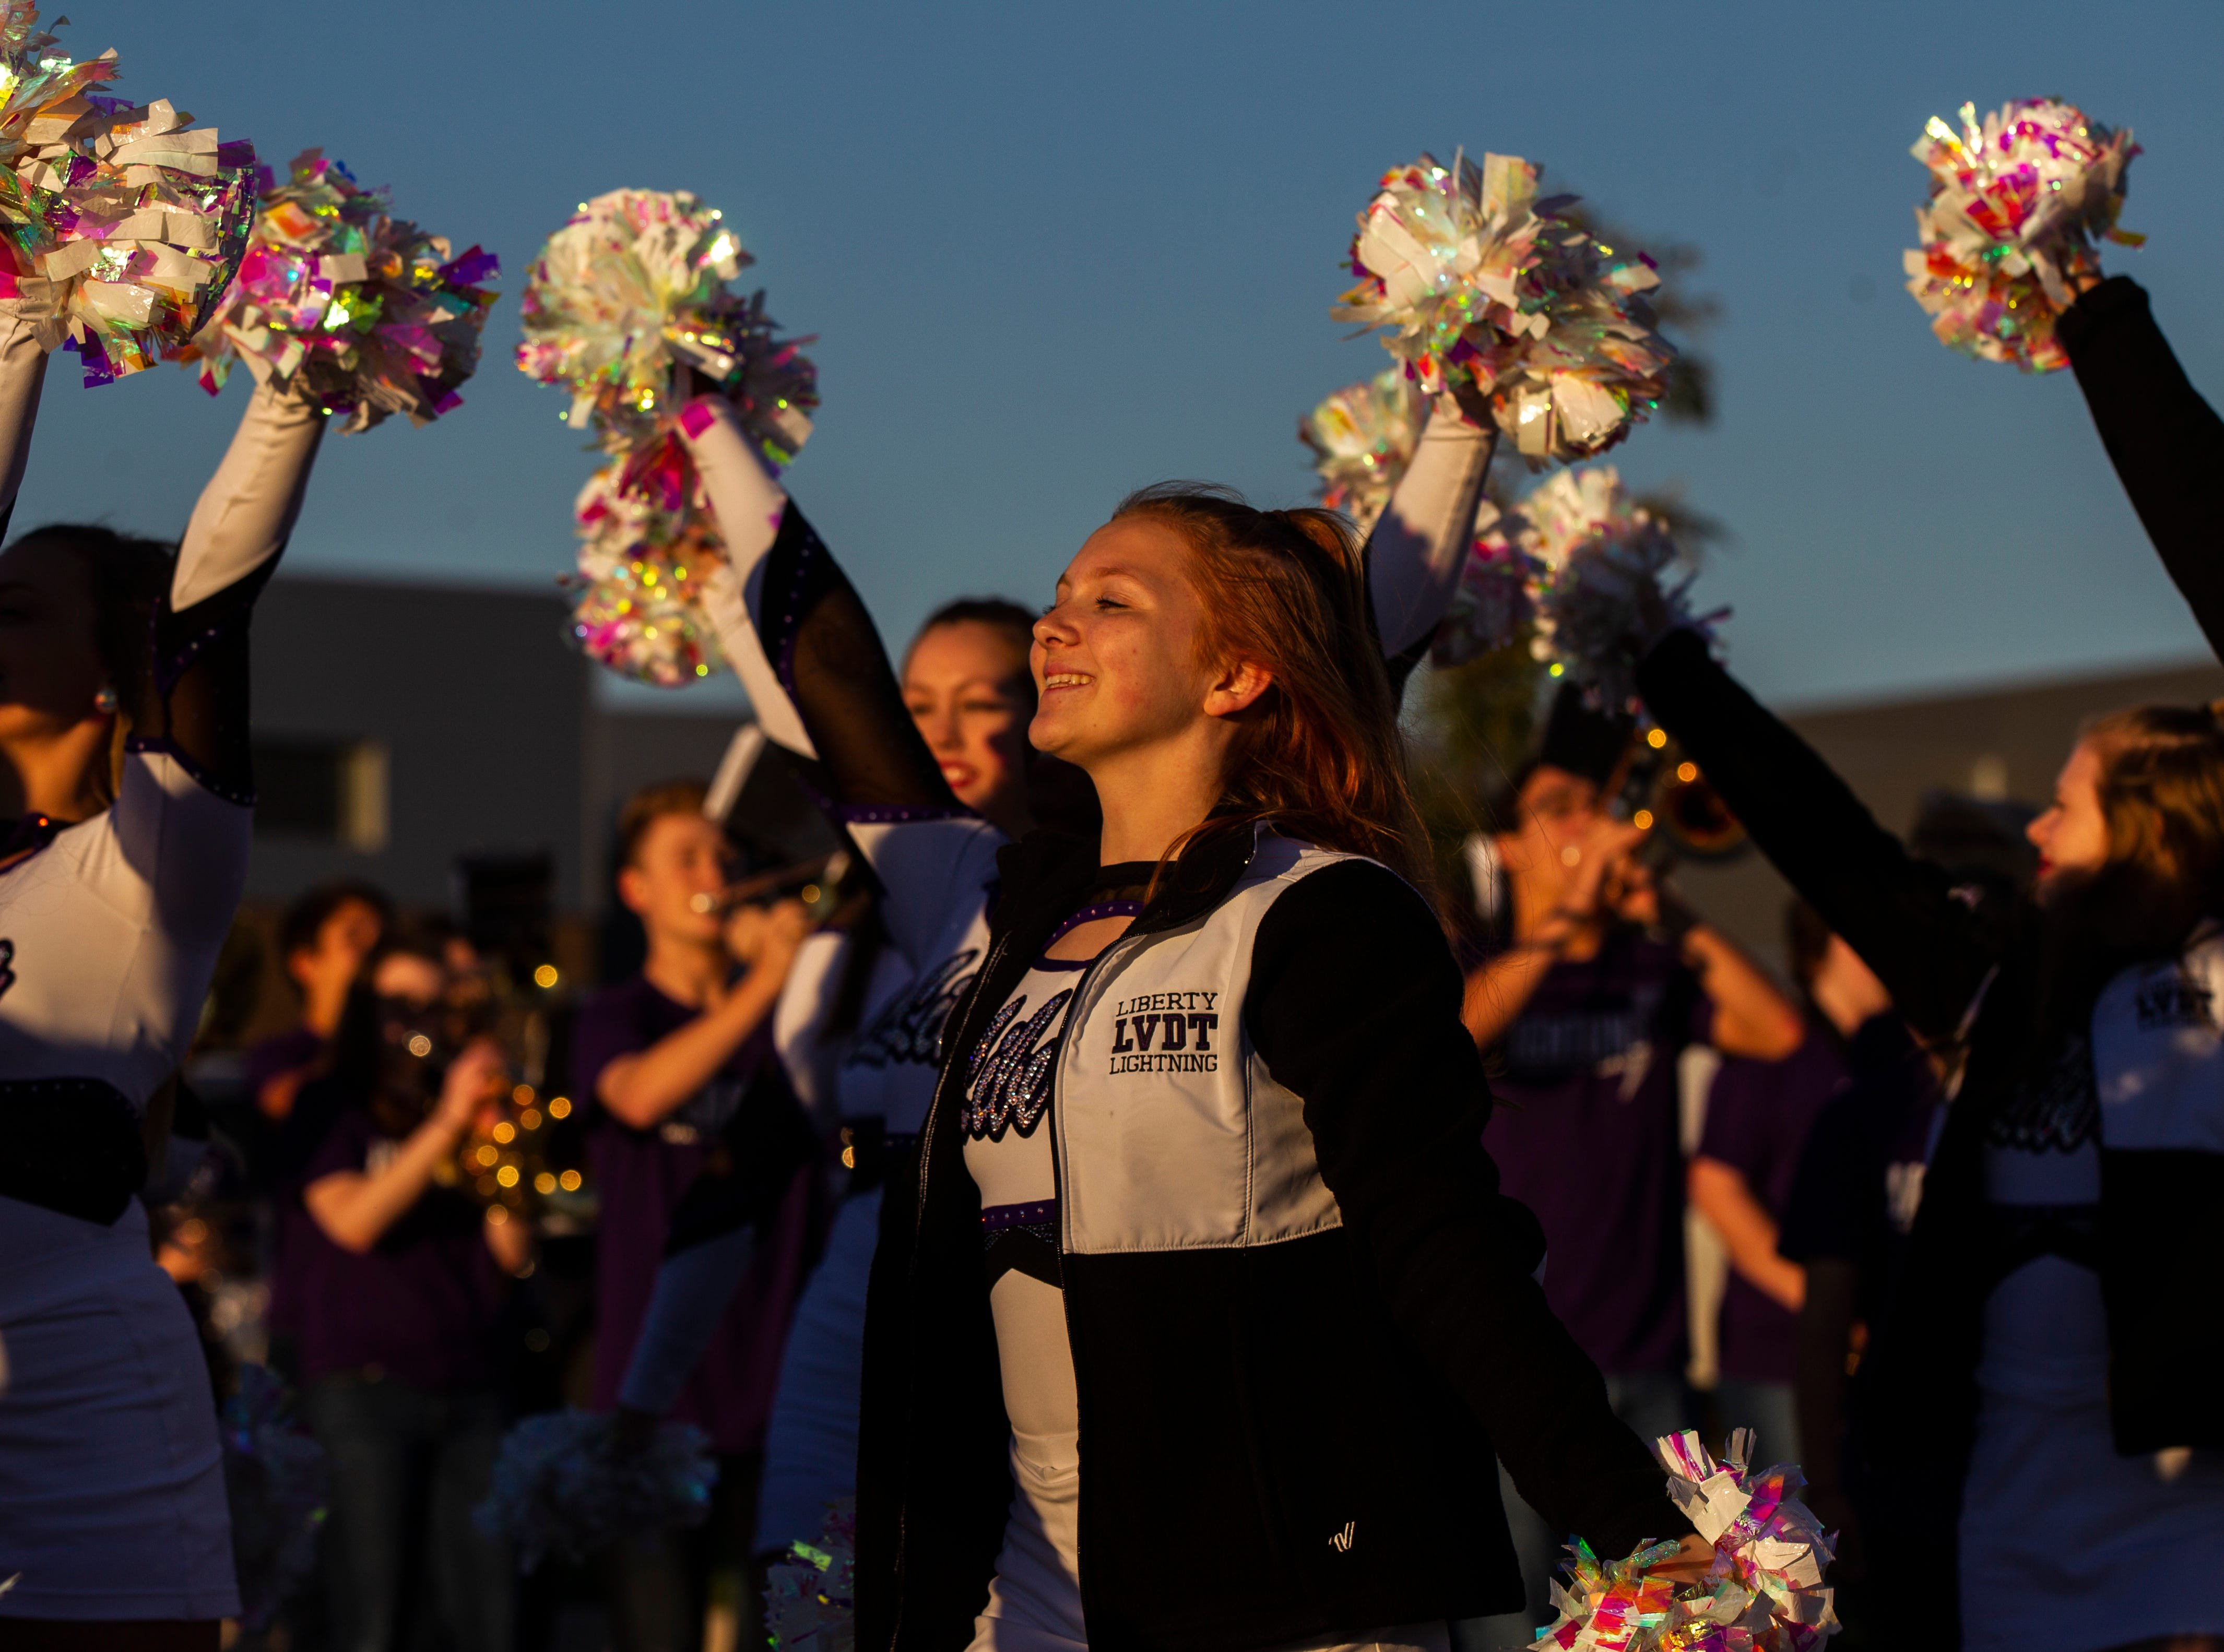 Cheerleaders perform during Liberty's homecoming parade on Wednesday, Sept. 26, 2018, in North Liberty, Iowa.